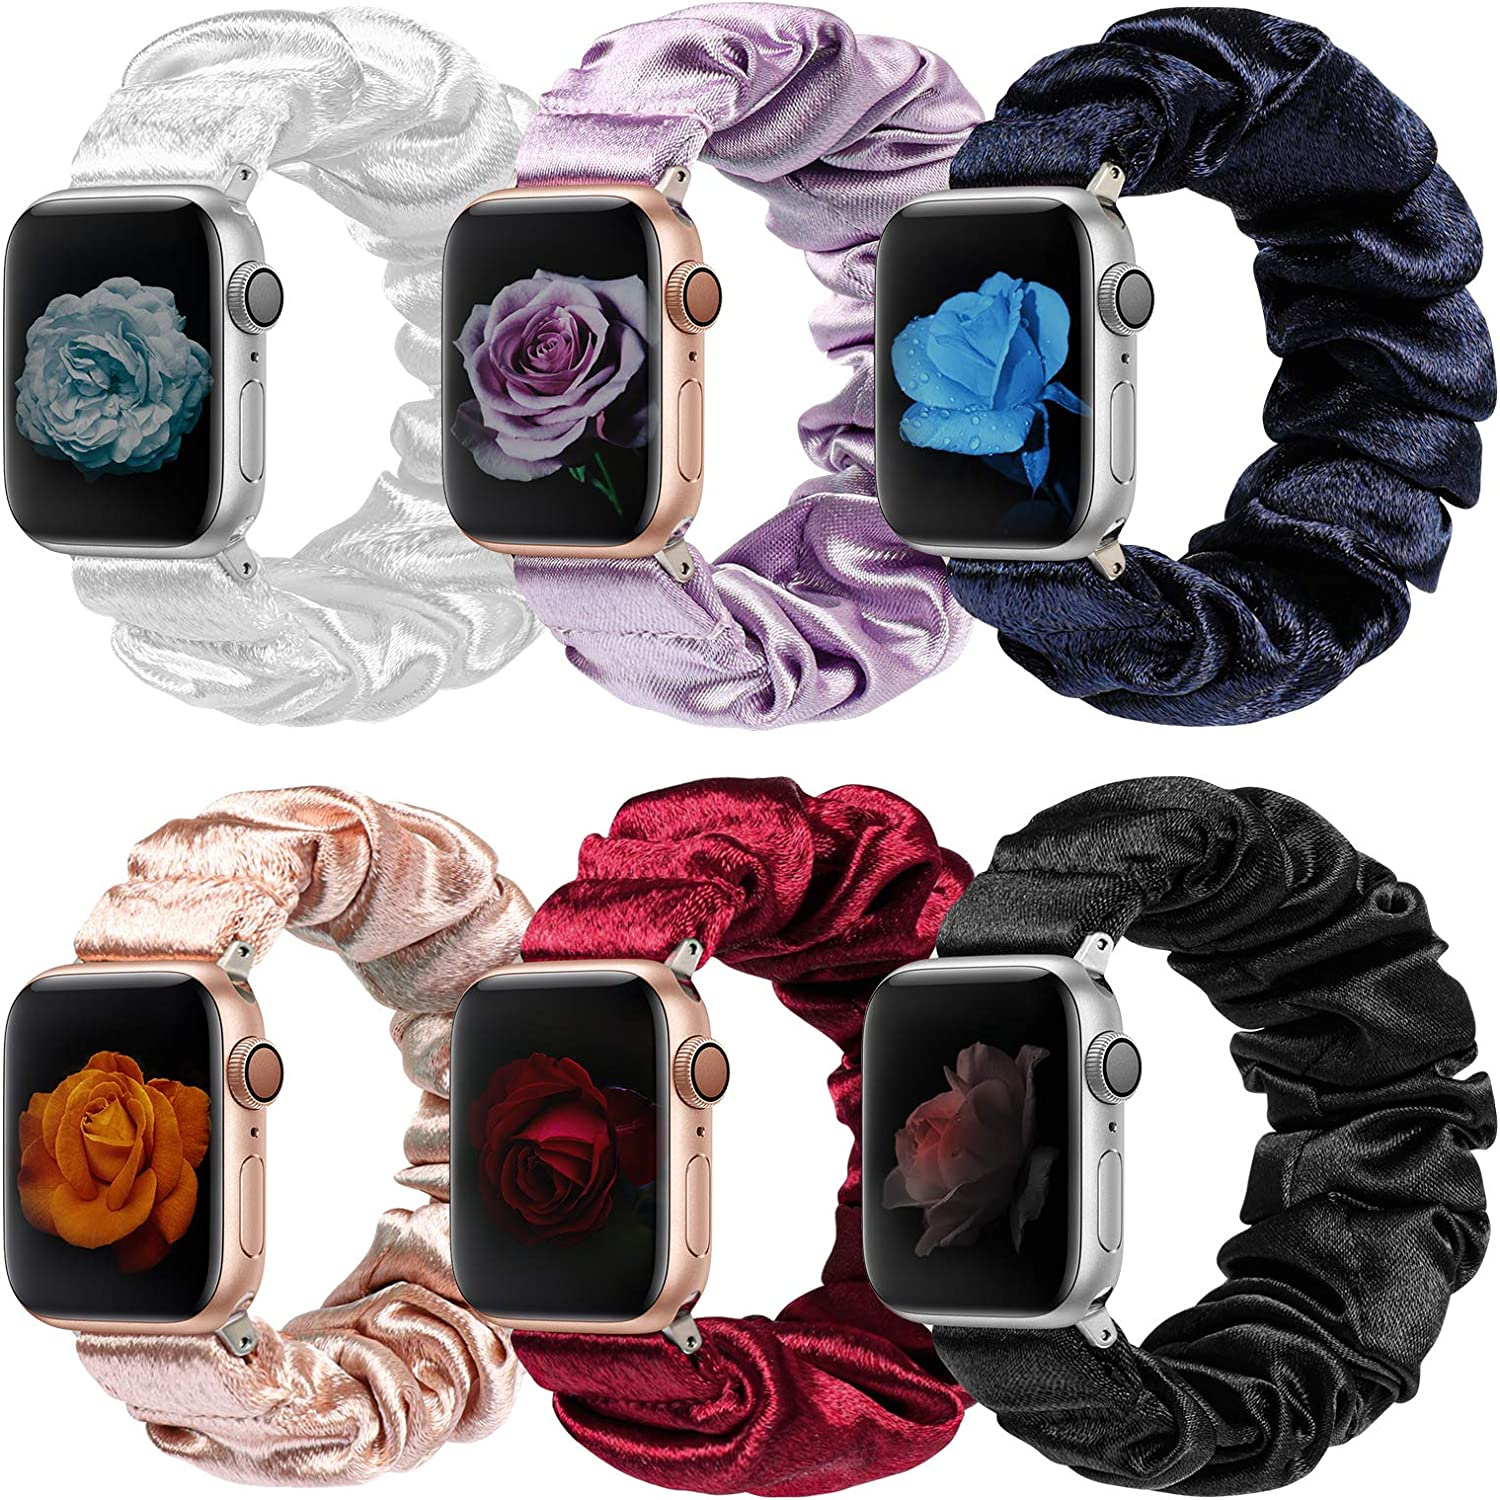 MITERV Compatible with Apple Watch Band 38mm 40mm Soft Floral Fabric Elastic Scrunchies iWatch Bands for Apple Watch Series 6,SE,5,4,3,2,1 6 Pack Small 38mm 40mm